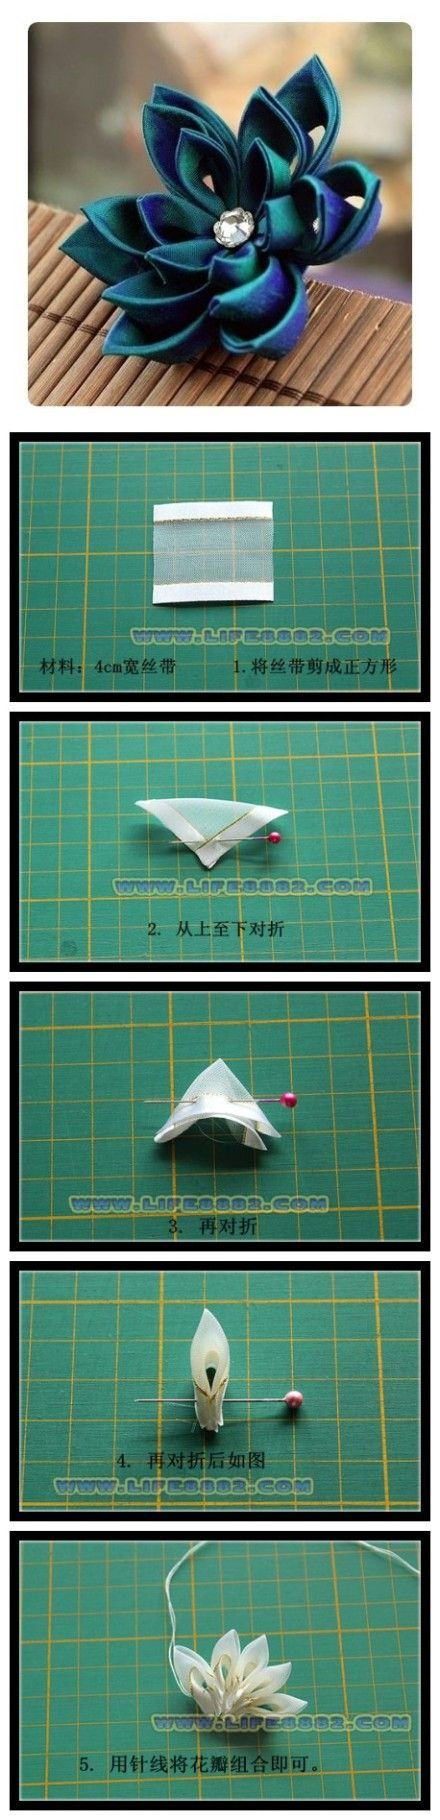 Tutorial For A Ribbon Lotus Flower Crafts Fair Craft Sales Items